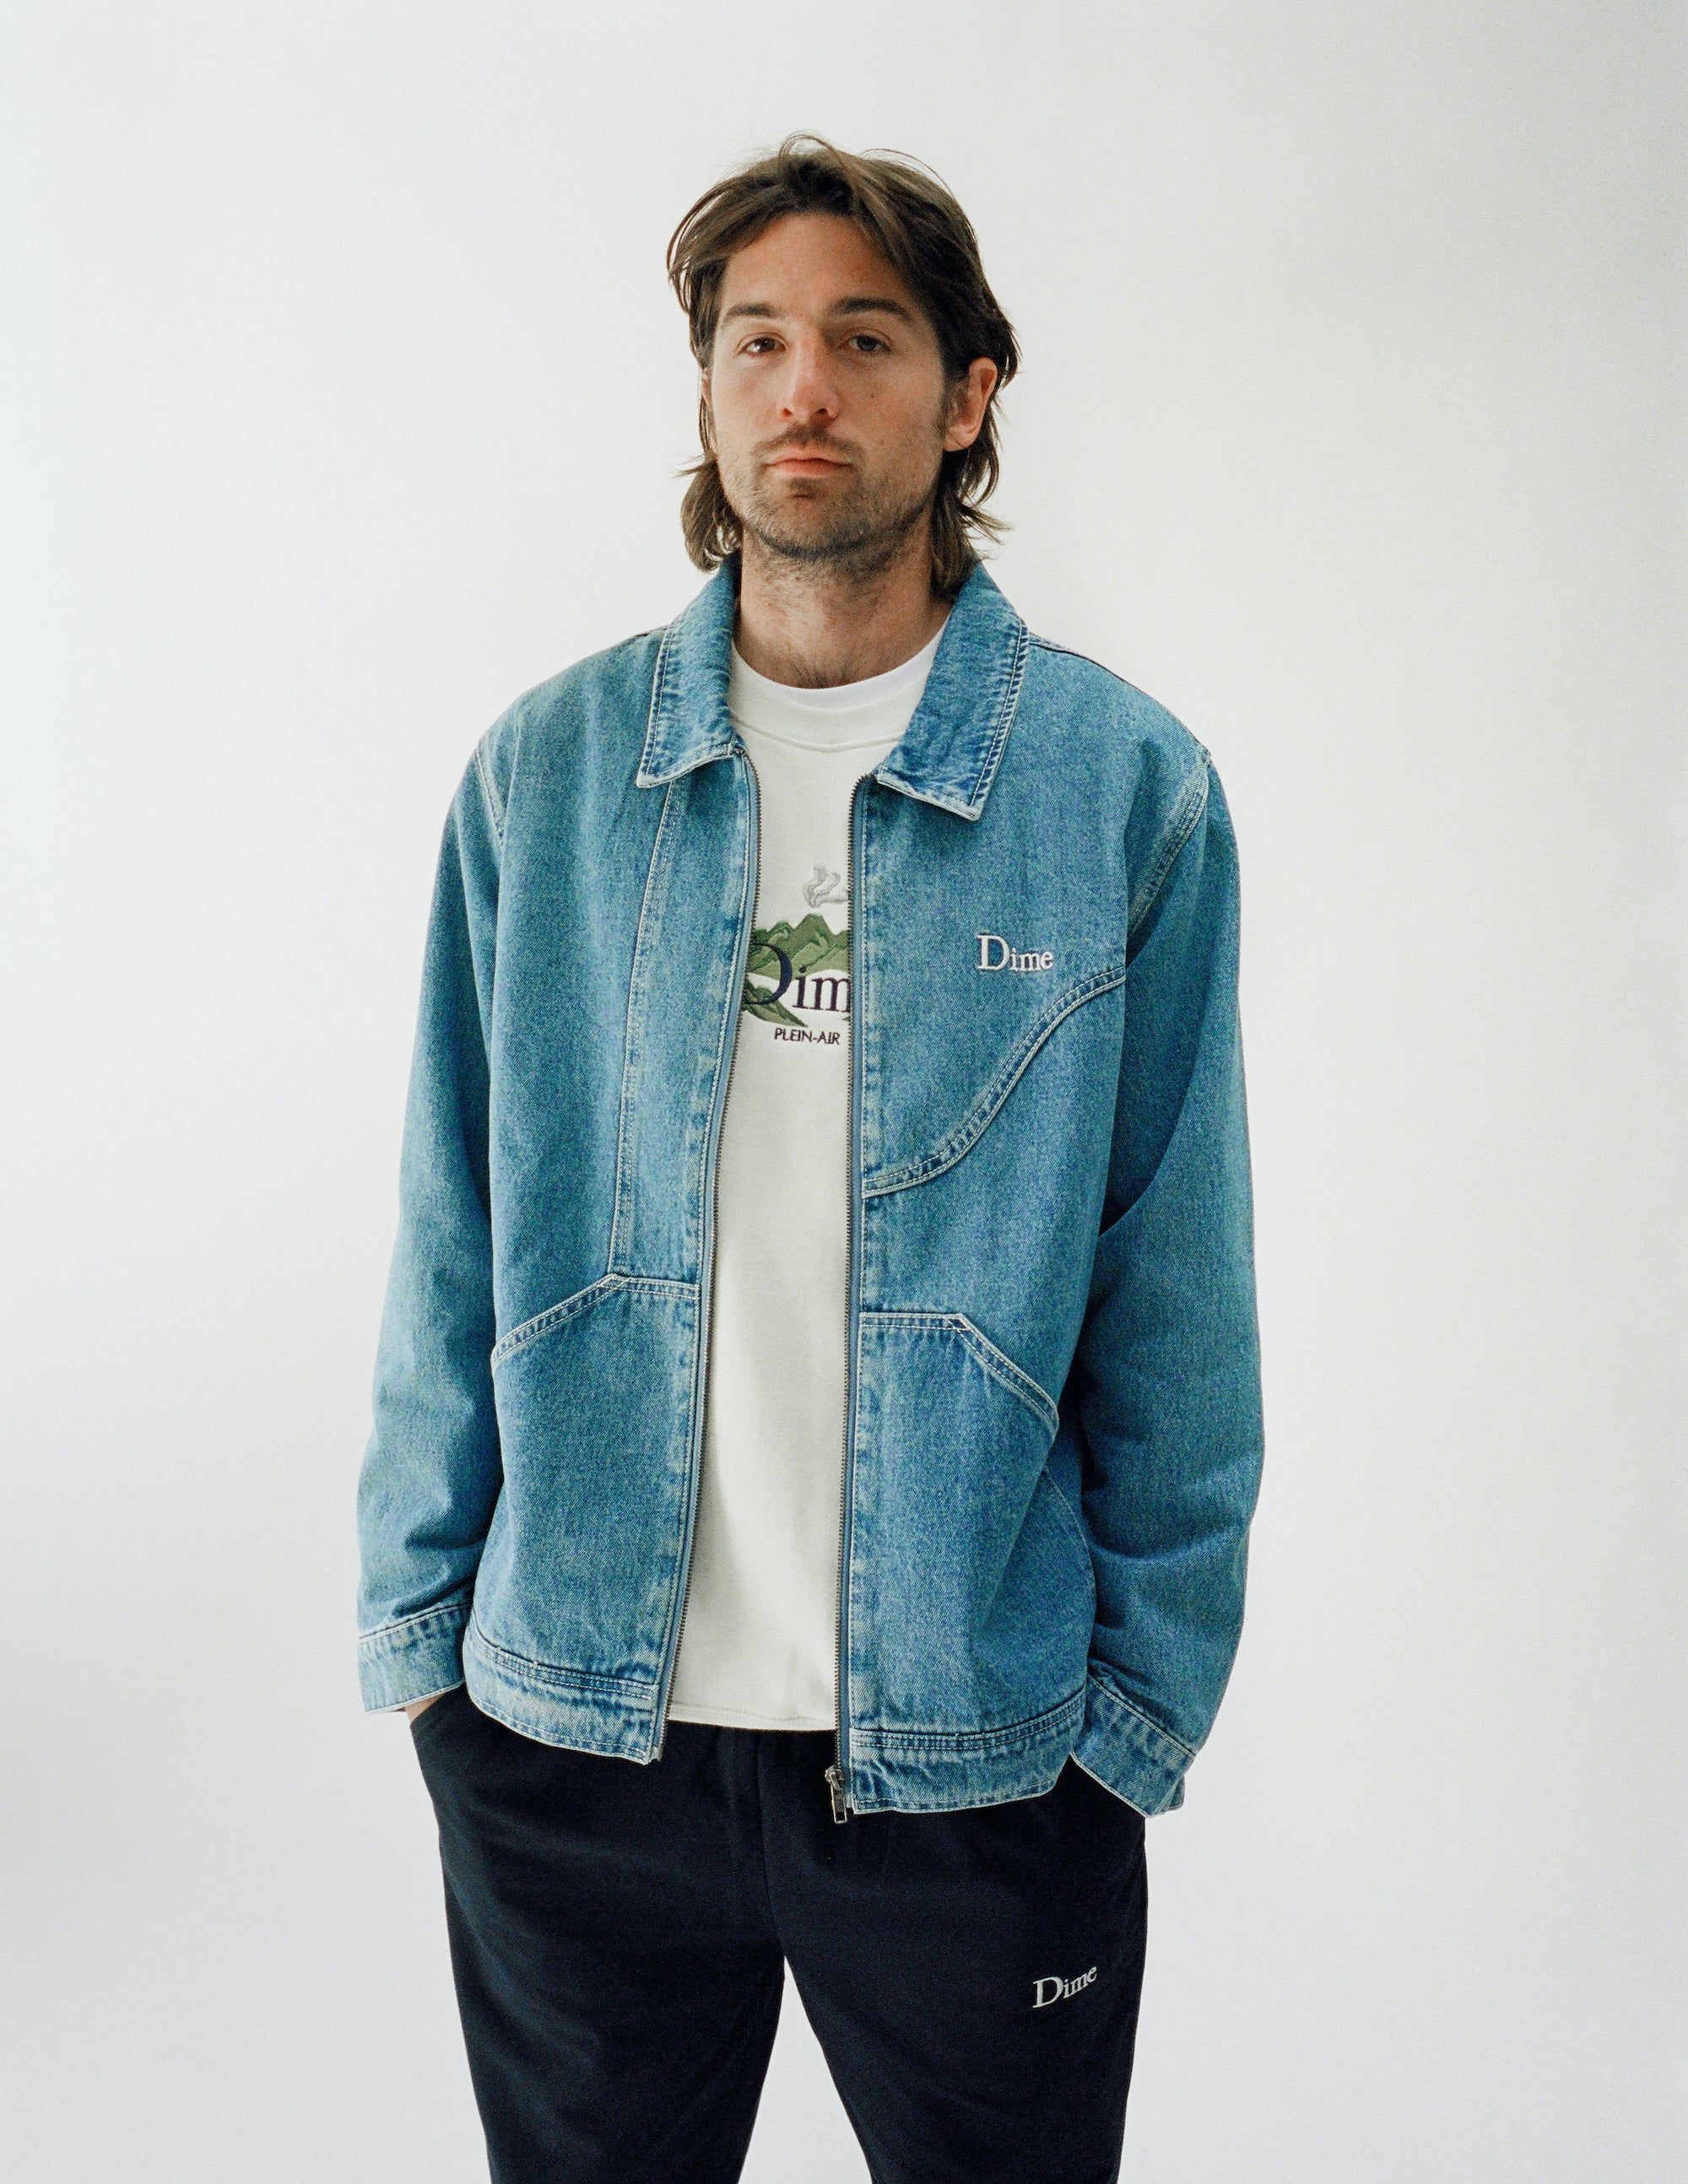 Dime Spring 2021 Lookbook Plein Air Crewneck in Ash Grey styled with Cotton Denim Chore Jacket in Light Wash and Twill Pants in Navy